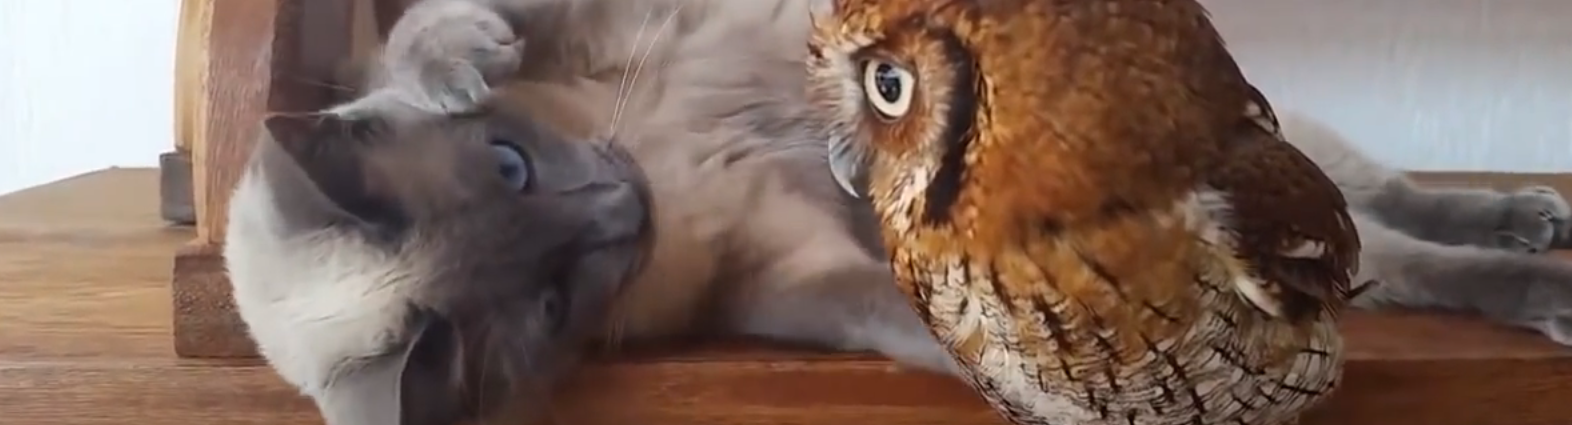 cat-and-owl-best-friends